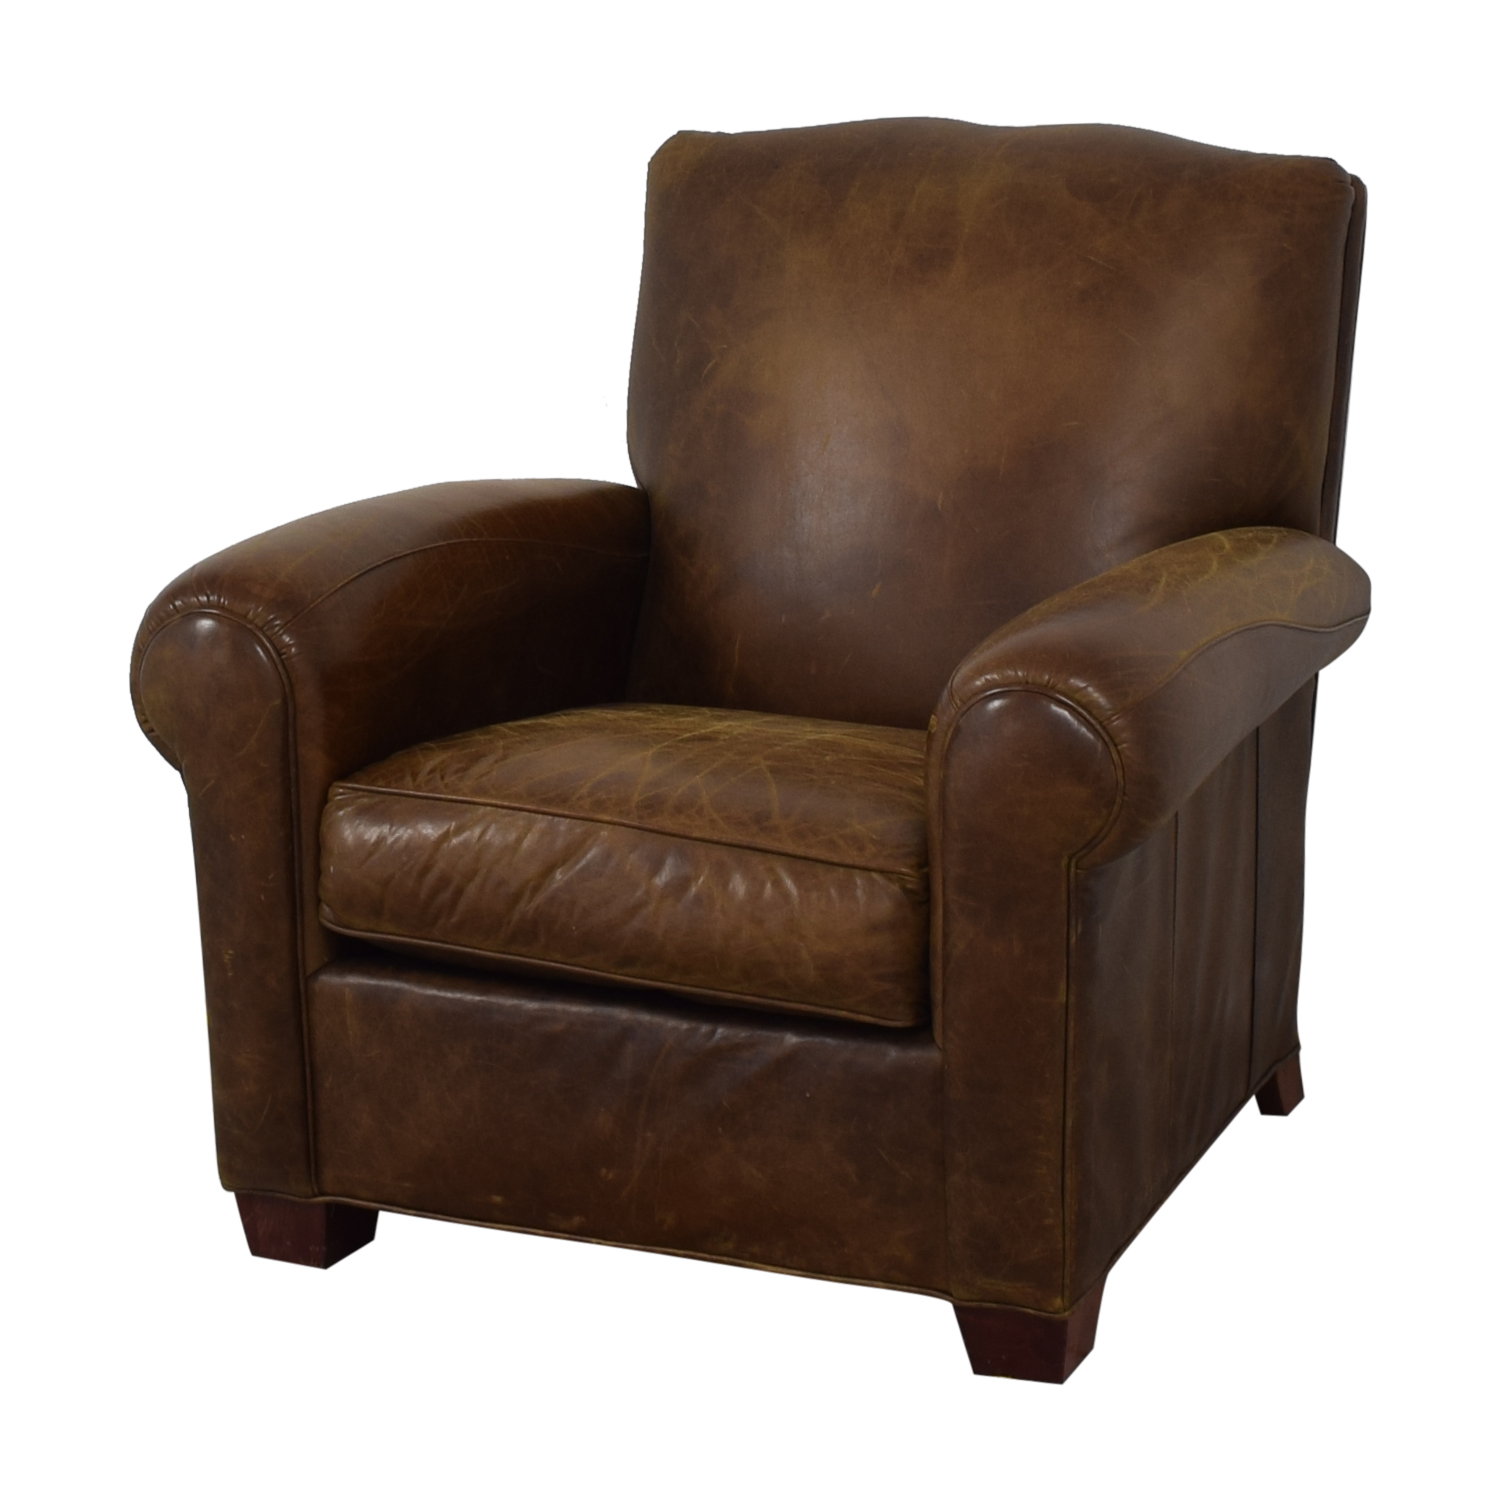 Zagaroli Classics Leather Club Reclining Chair Zagaroli Classics